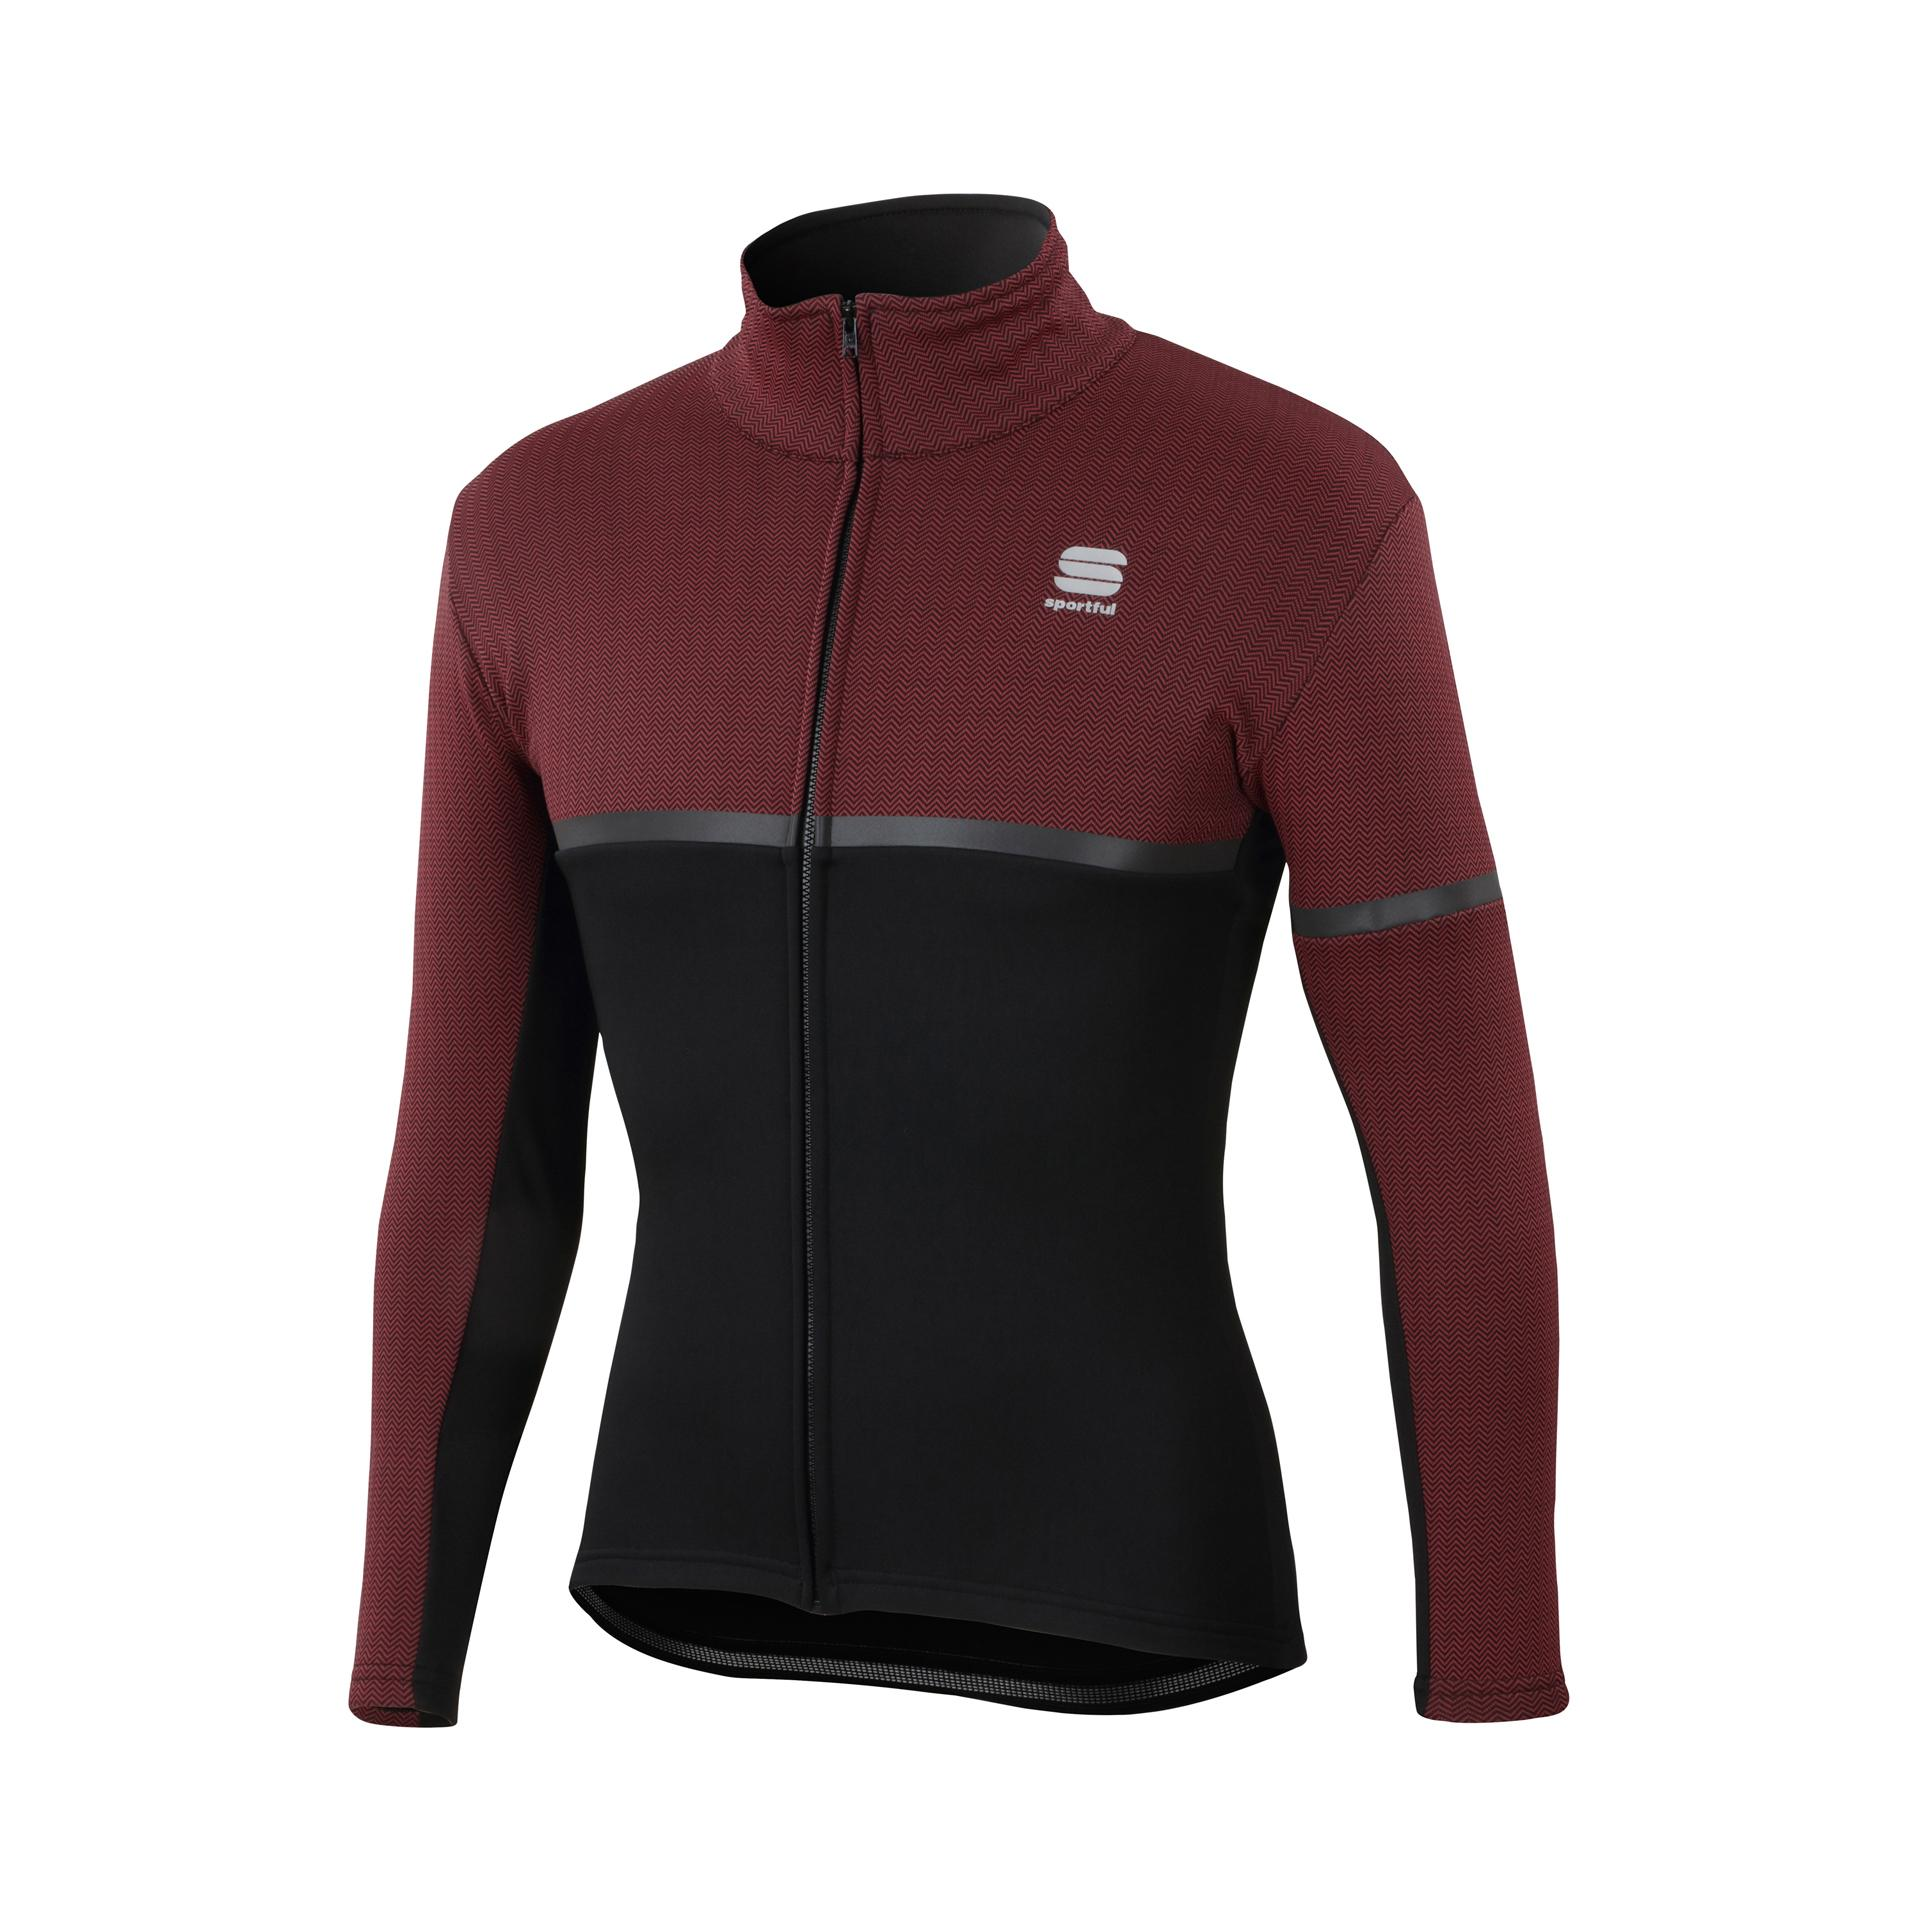 Sportful Fietsjack Heren Zwart Rood / SF Giara Softshell Jacket-Black/Ruby Wine